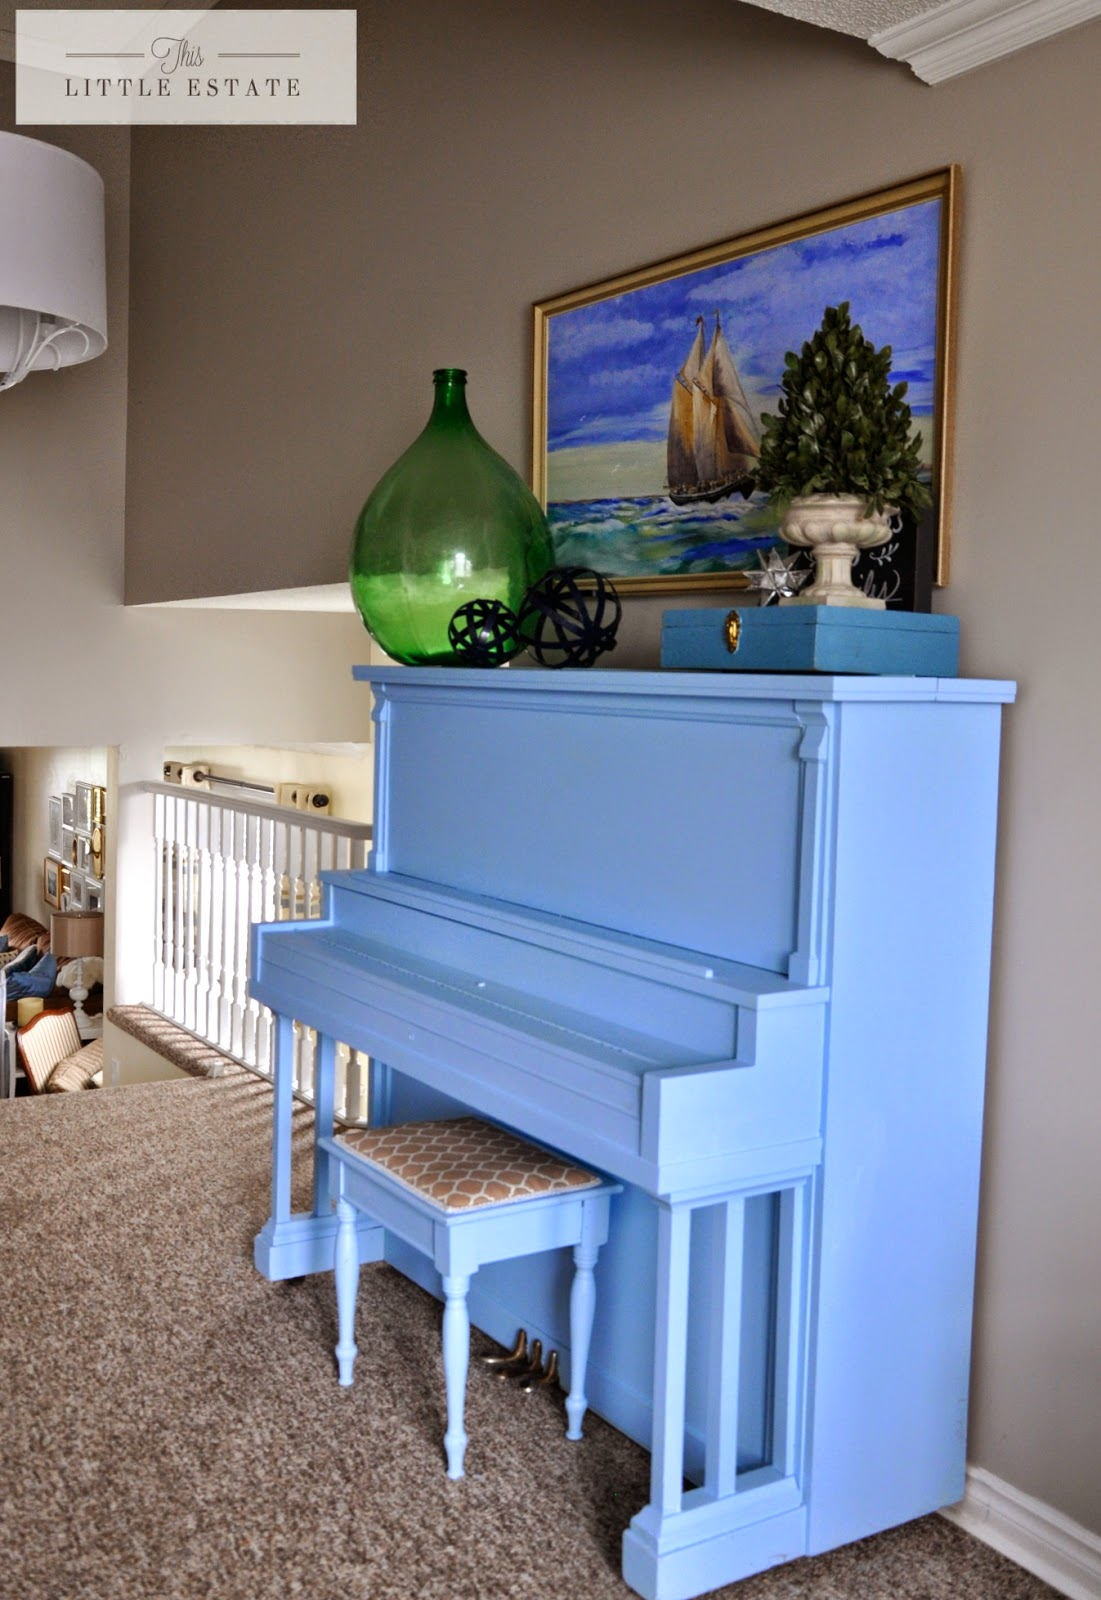 http://thislittleestate.blogspot.ca/2014/10/a-painted-piano-part-two.html